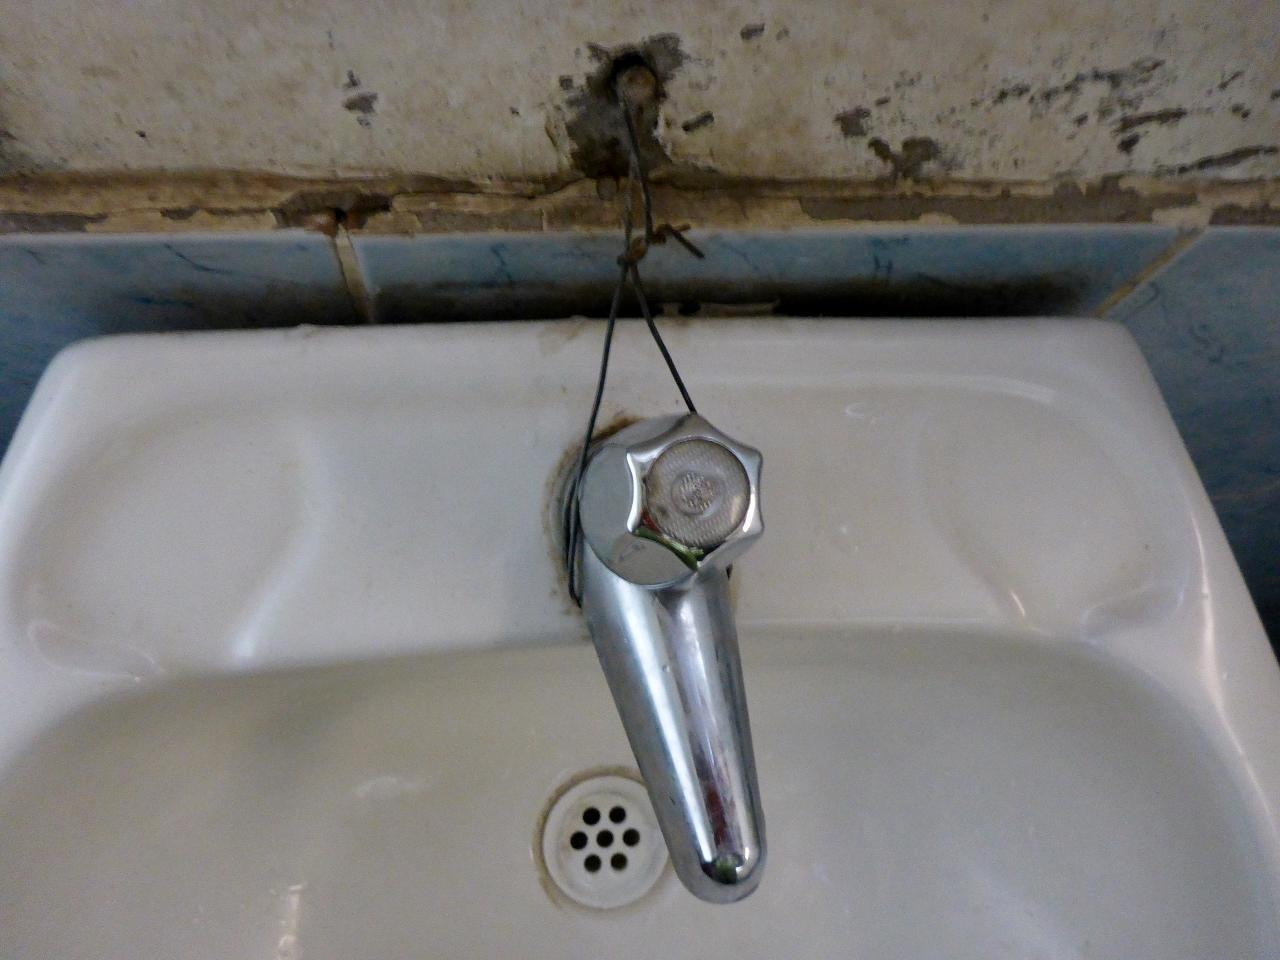 The sink was not connected to the wall. This fixed it!